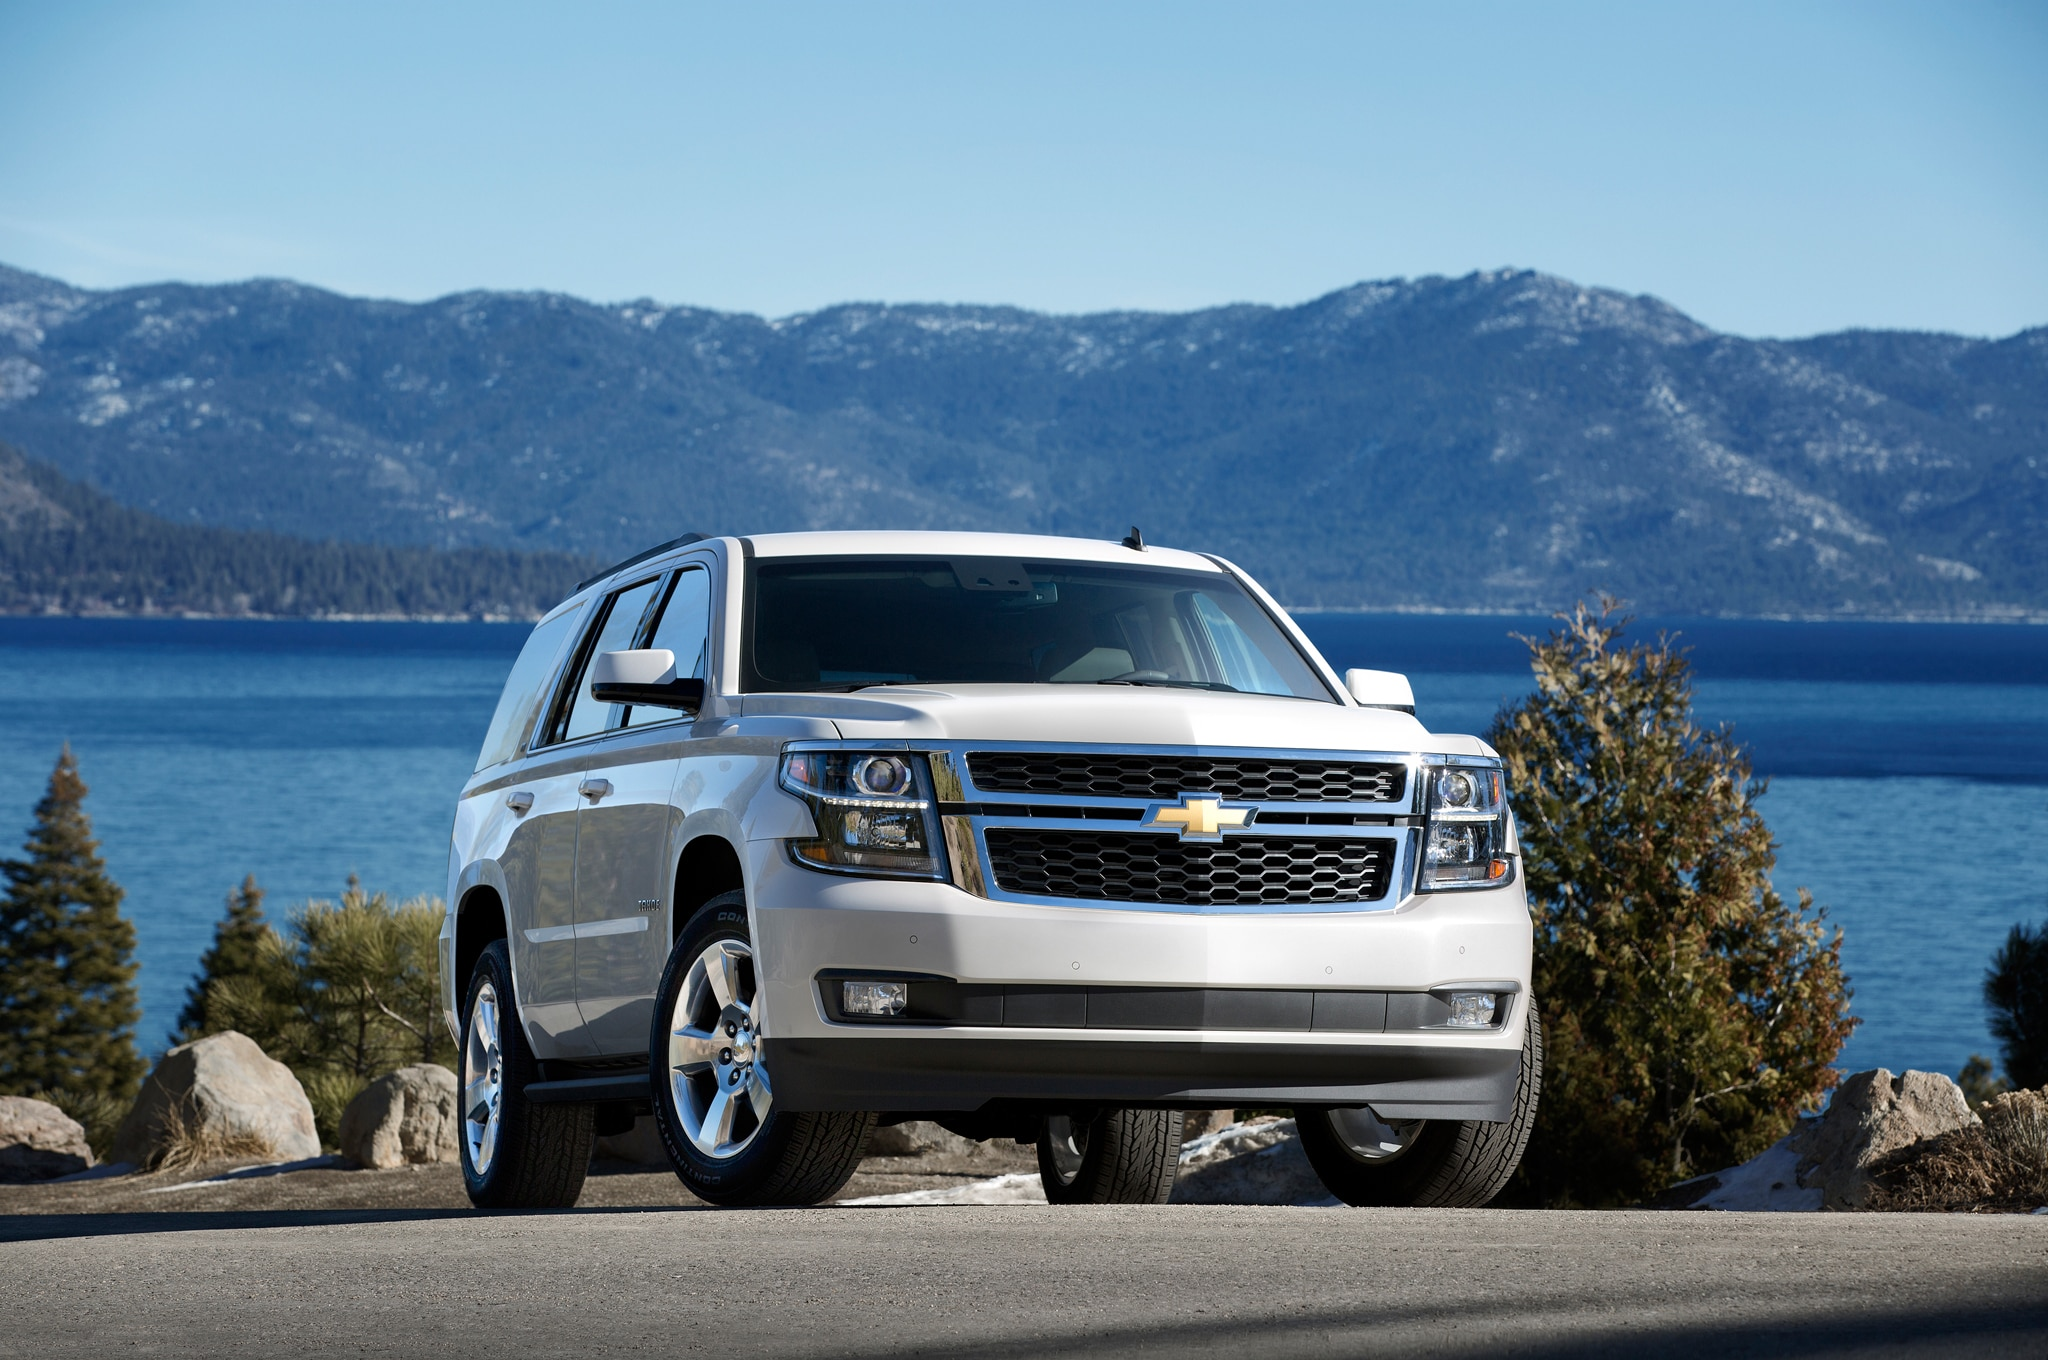 2015 Chevrolet Tahoe Front Three Quarter